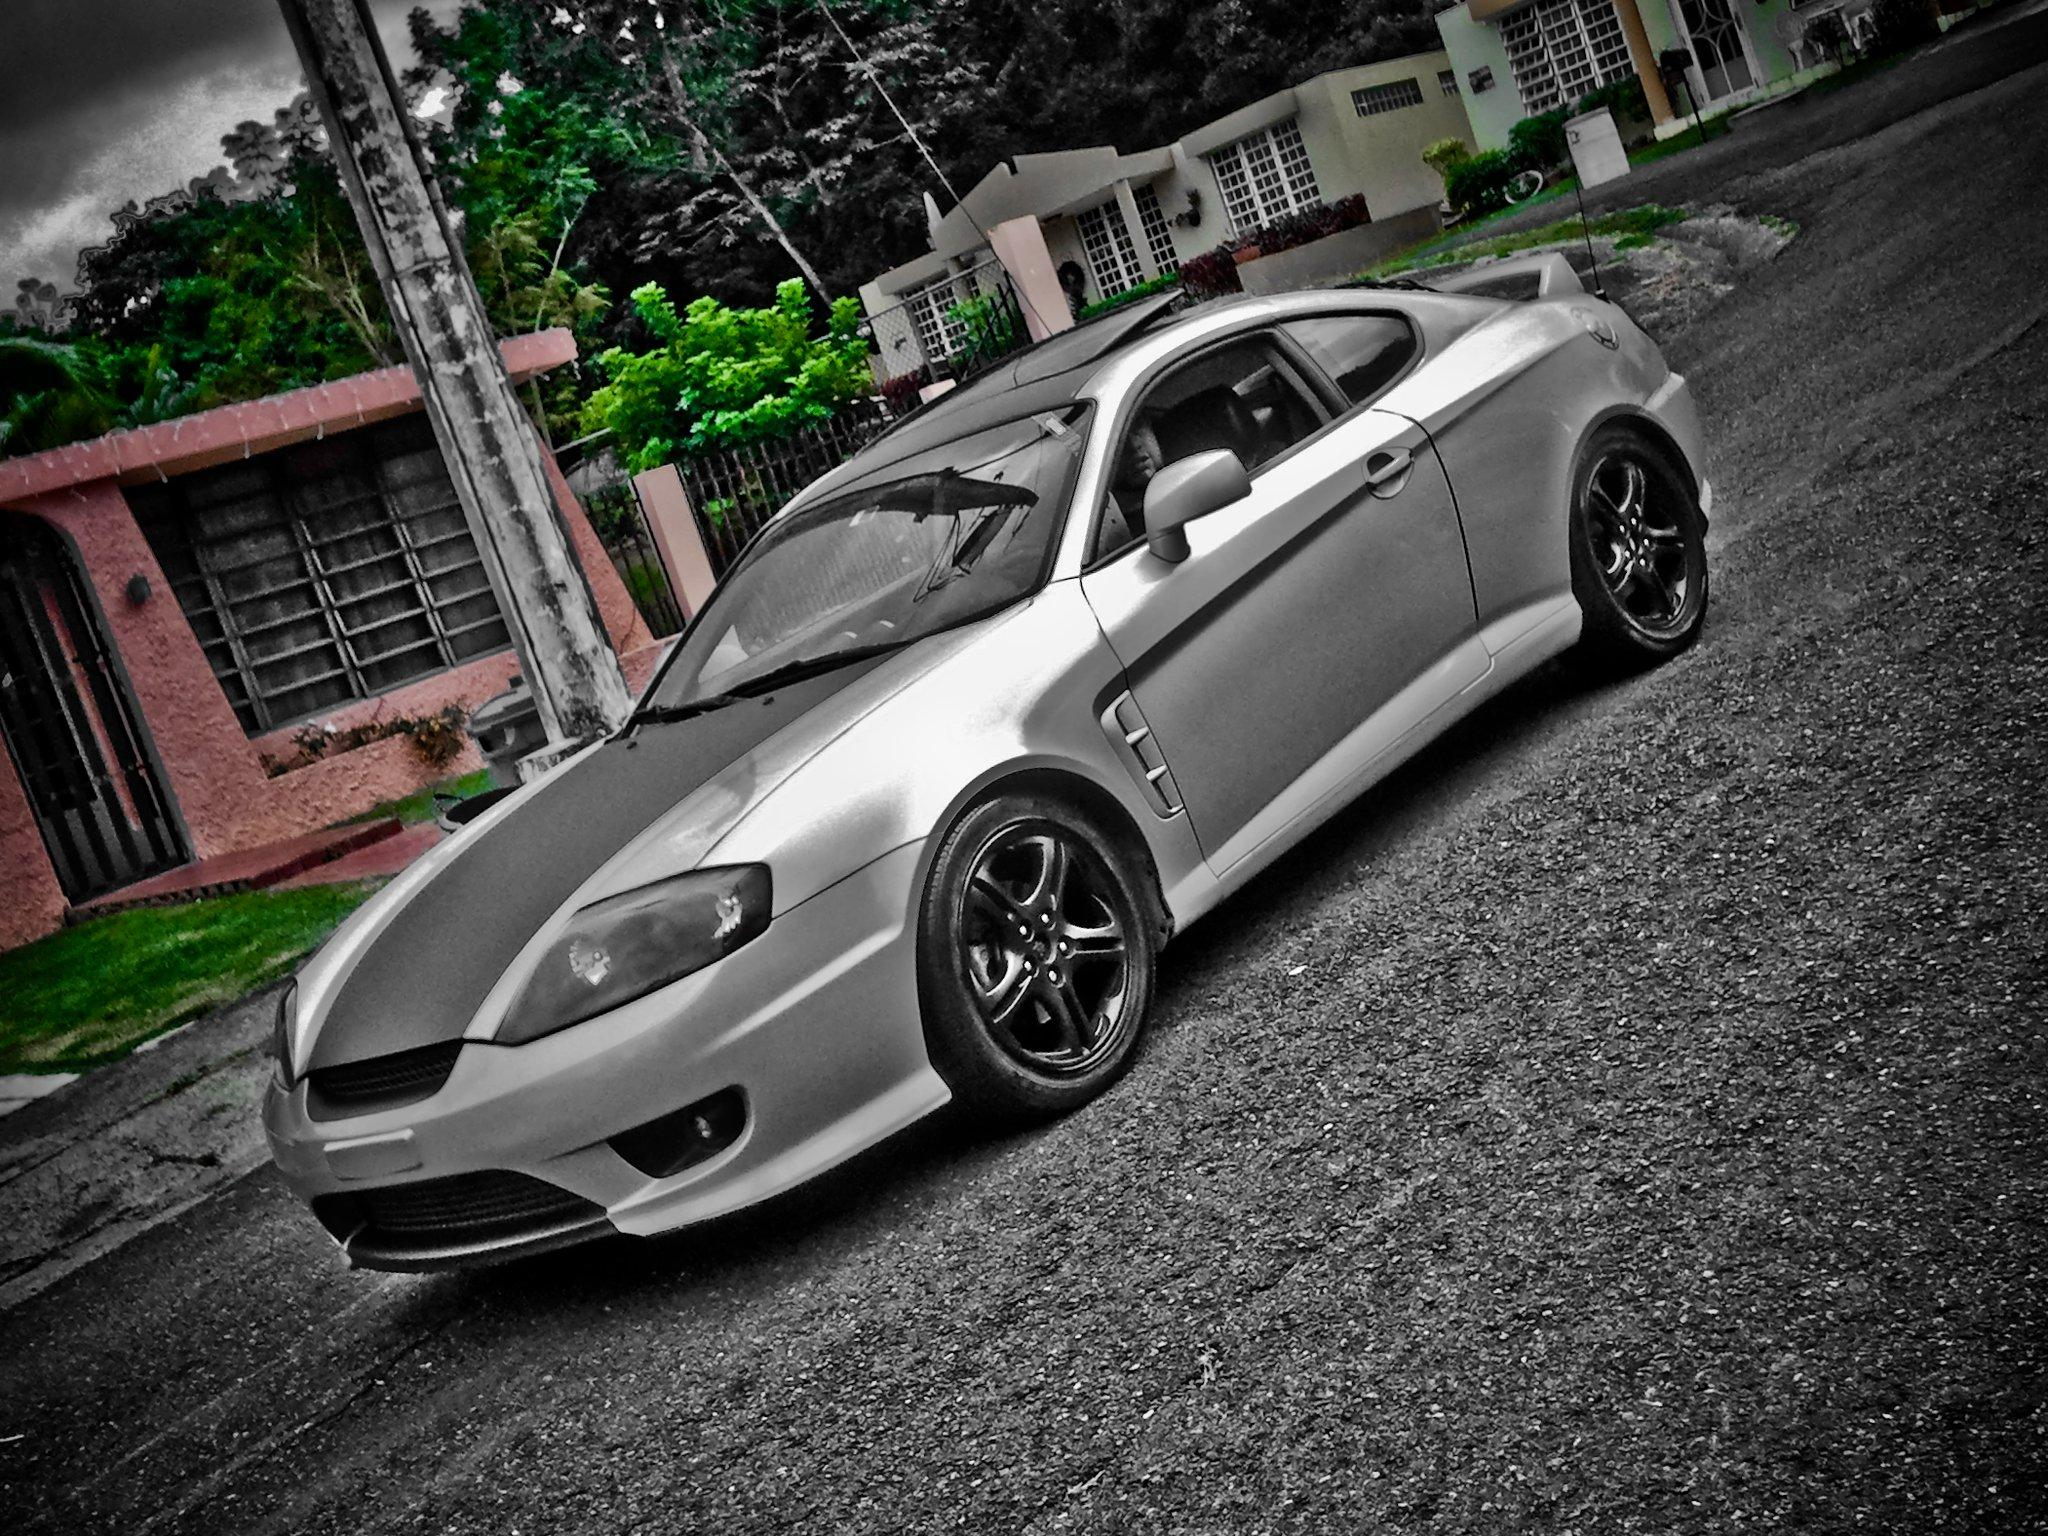 sen5ei 2005 hyundai tiburongt hatchback coupe 2d specs. Black Bedroom Furniture Sets. Home Design Ideas